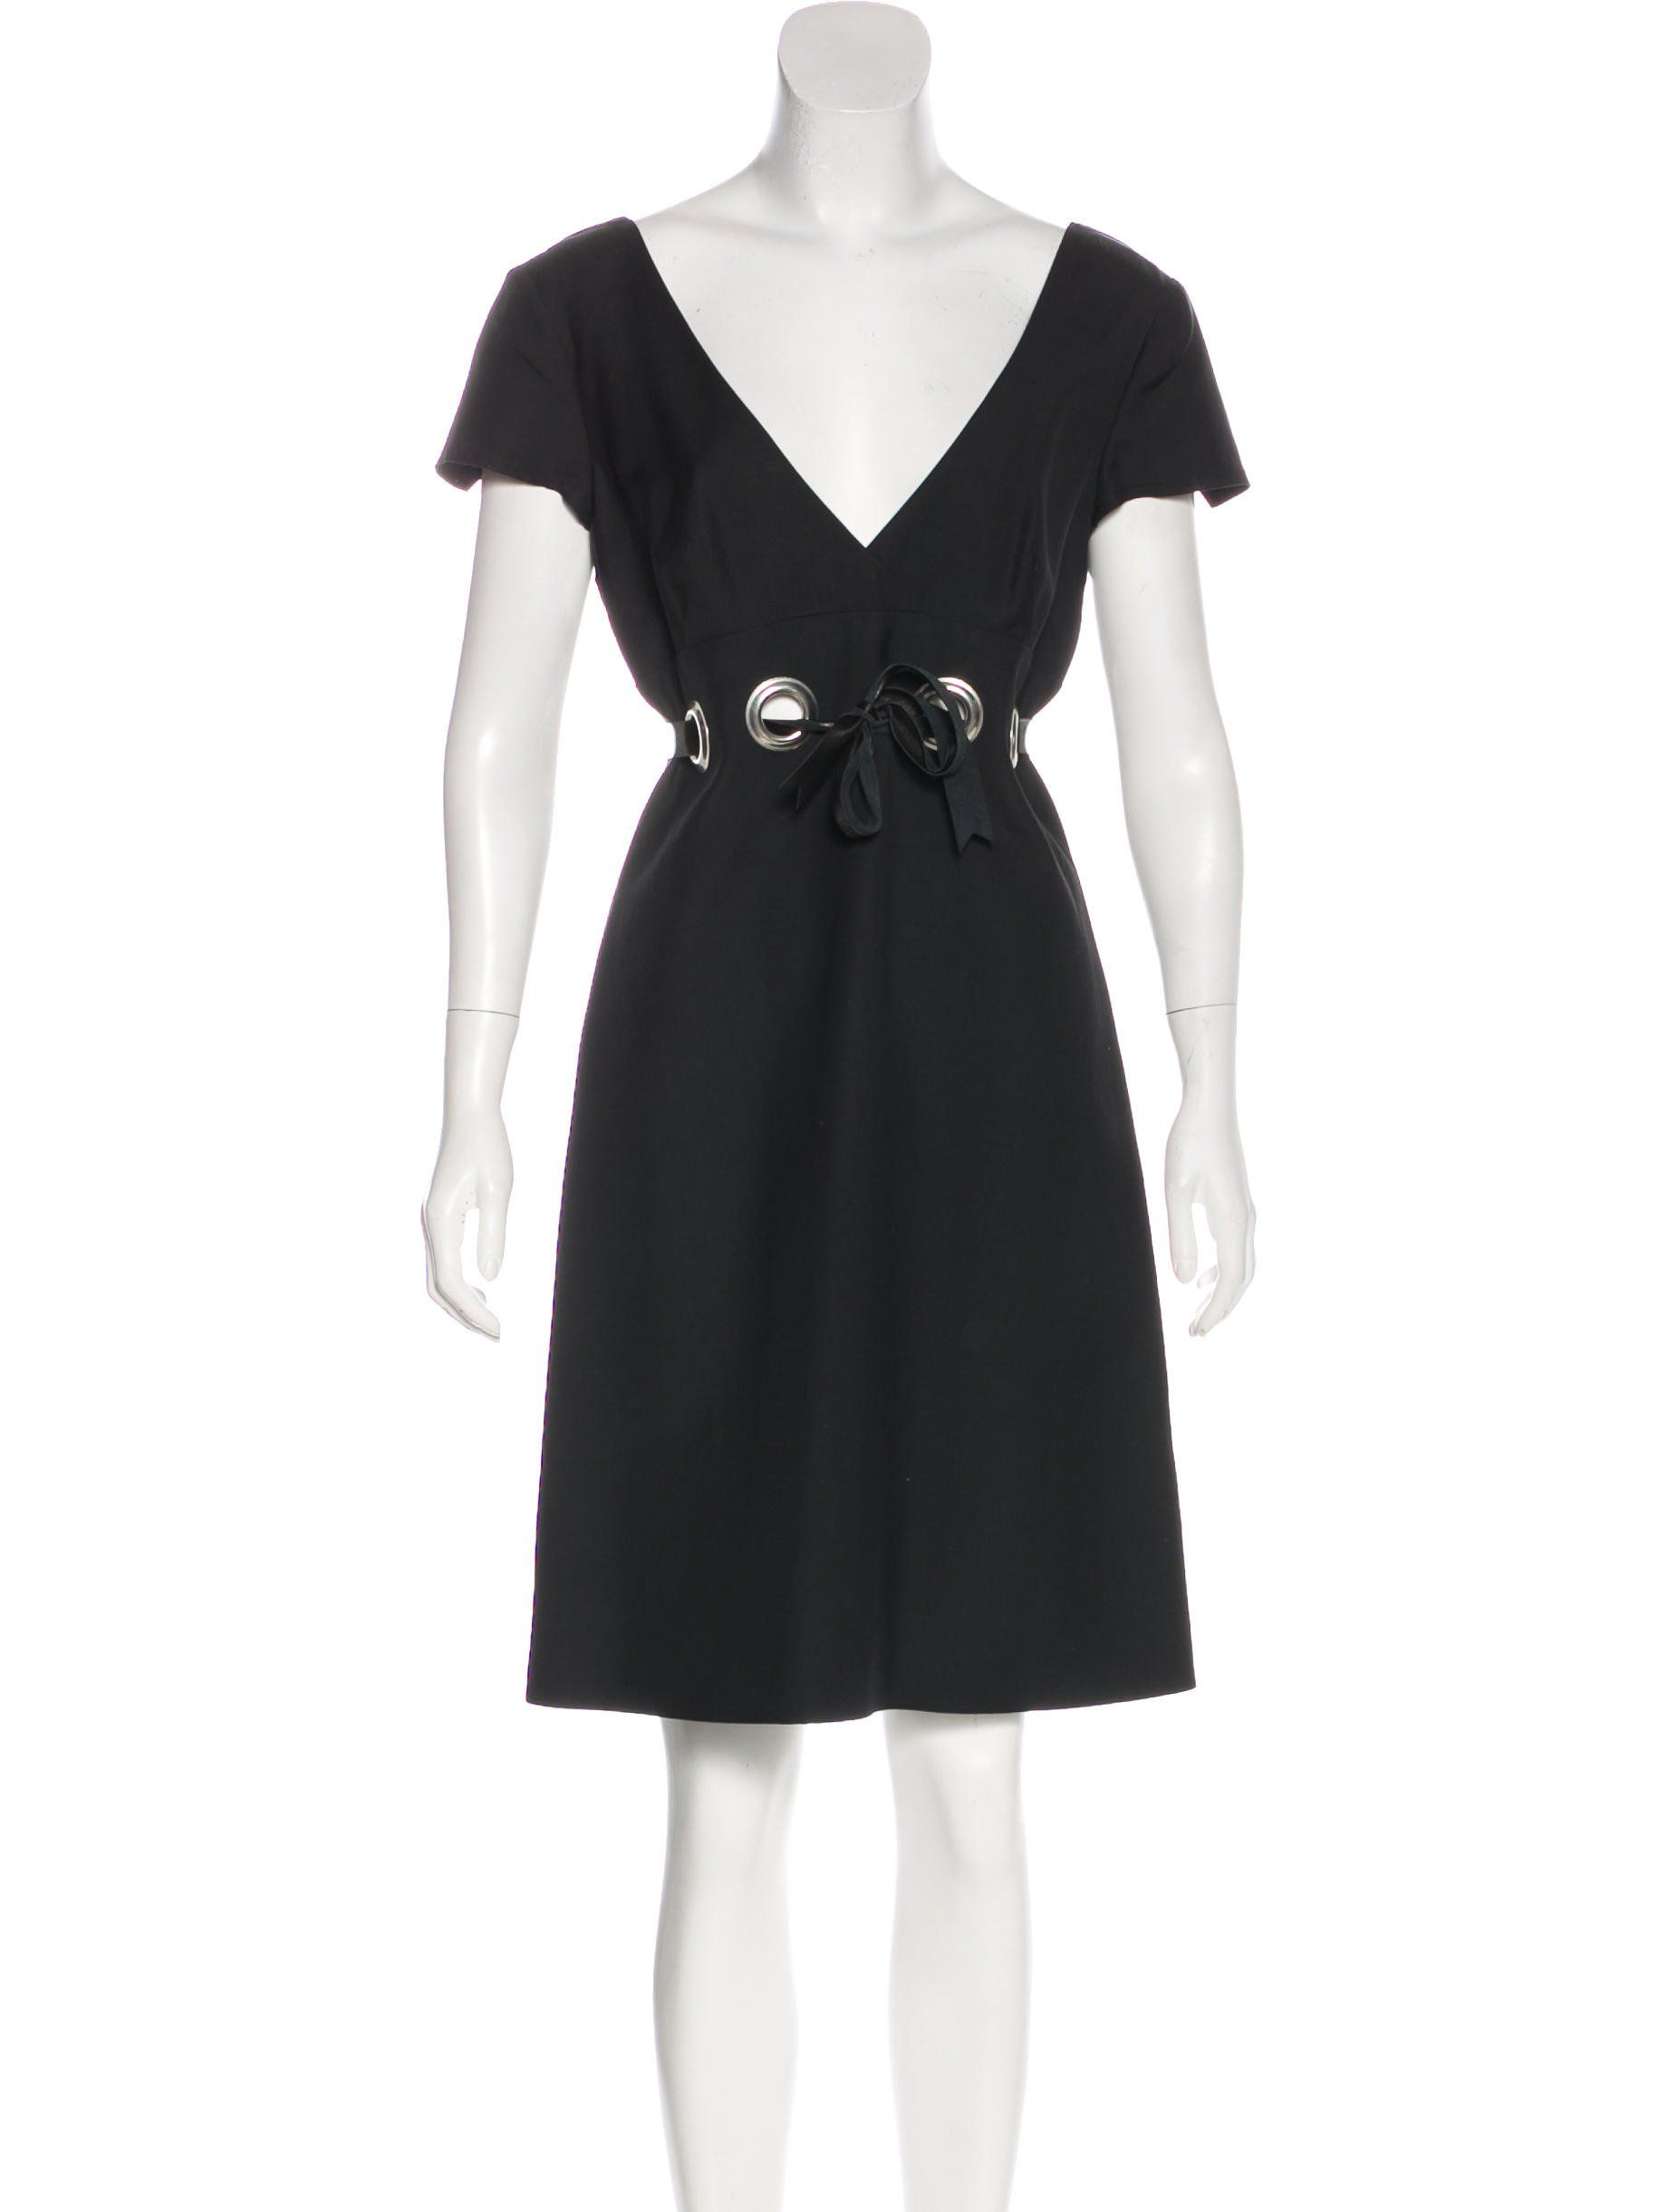 Black chloà short sleeve kneelength dress with surplice neck